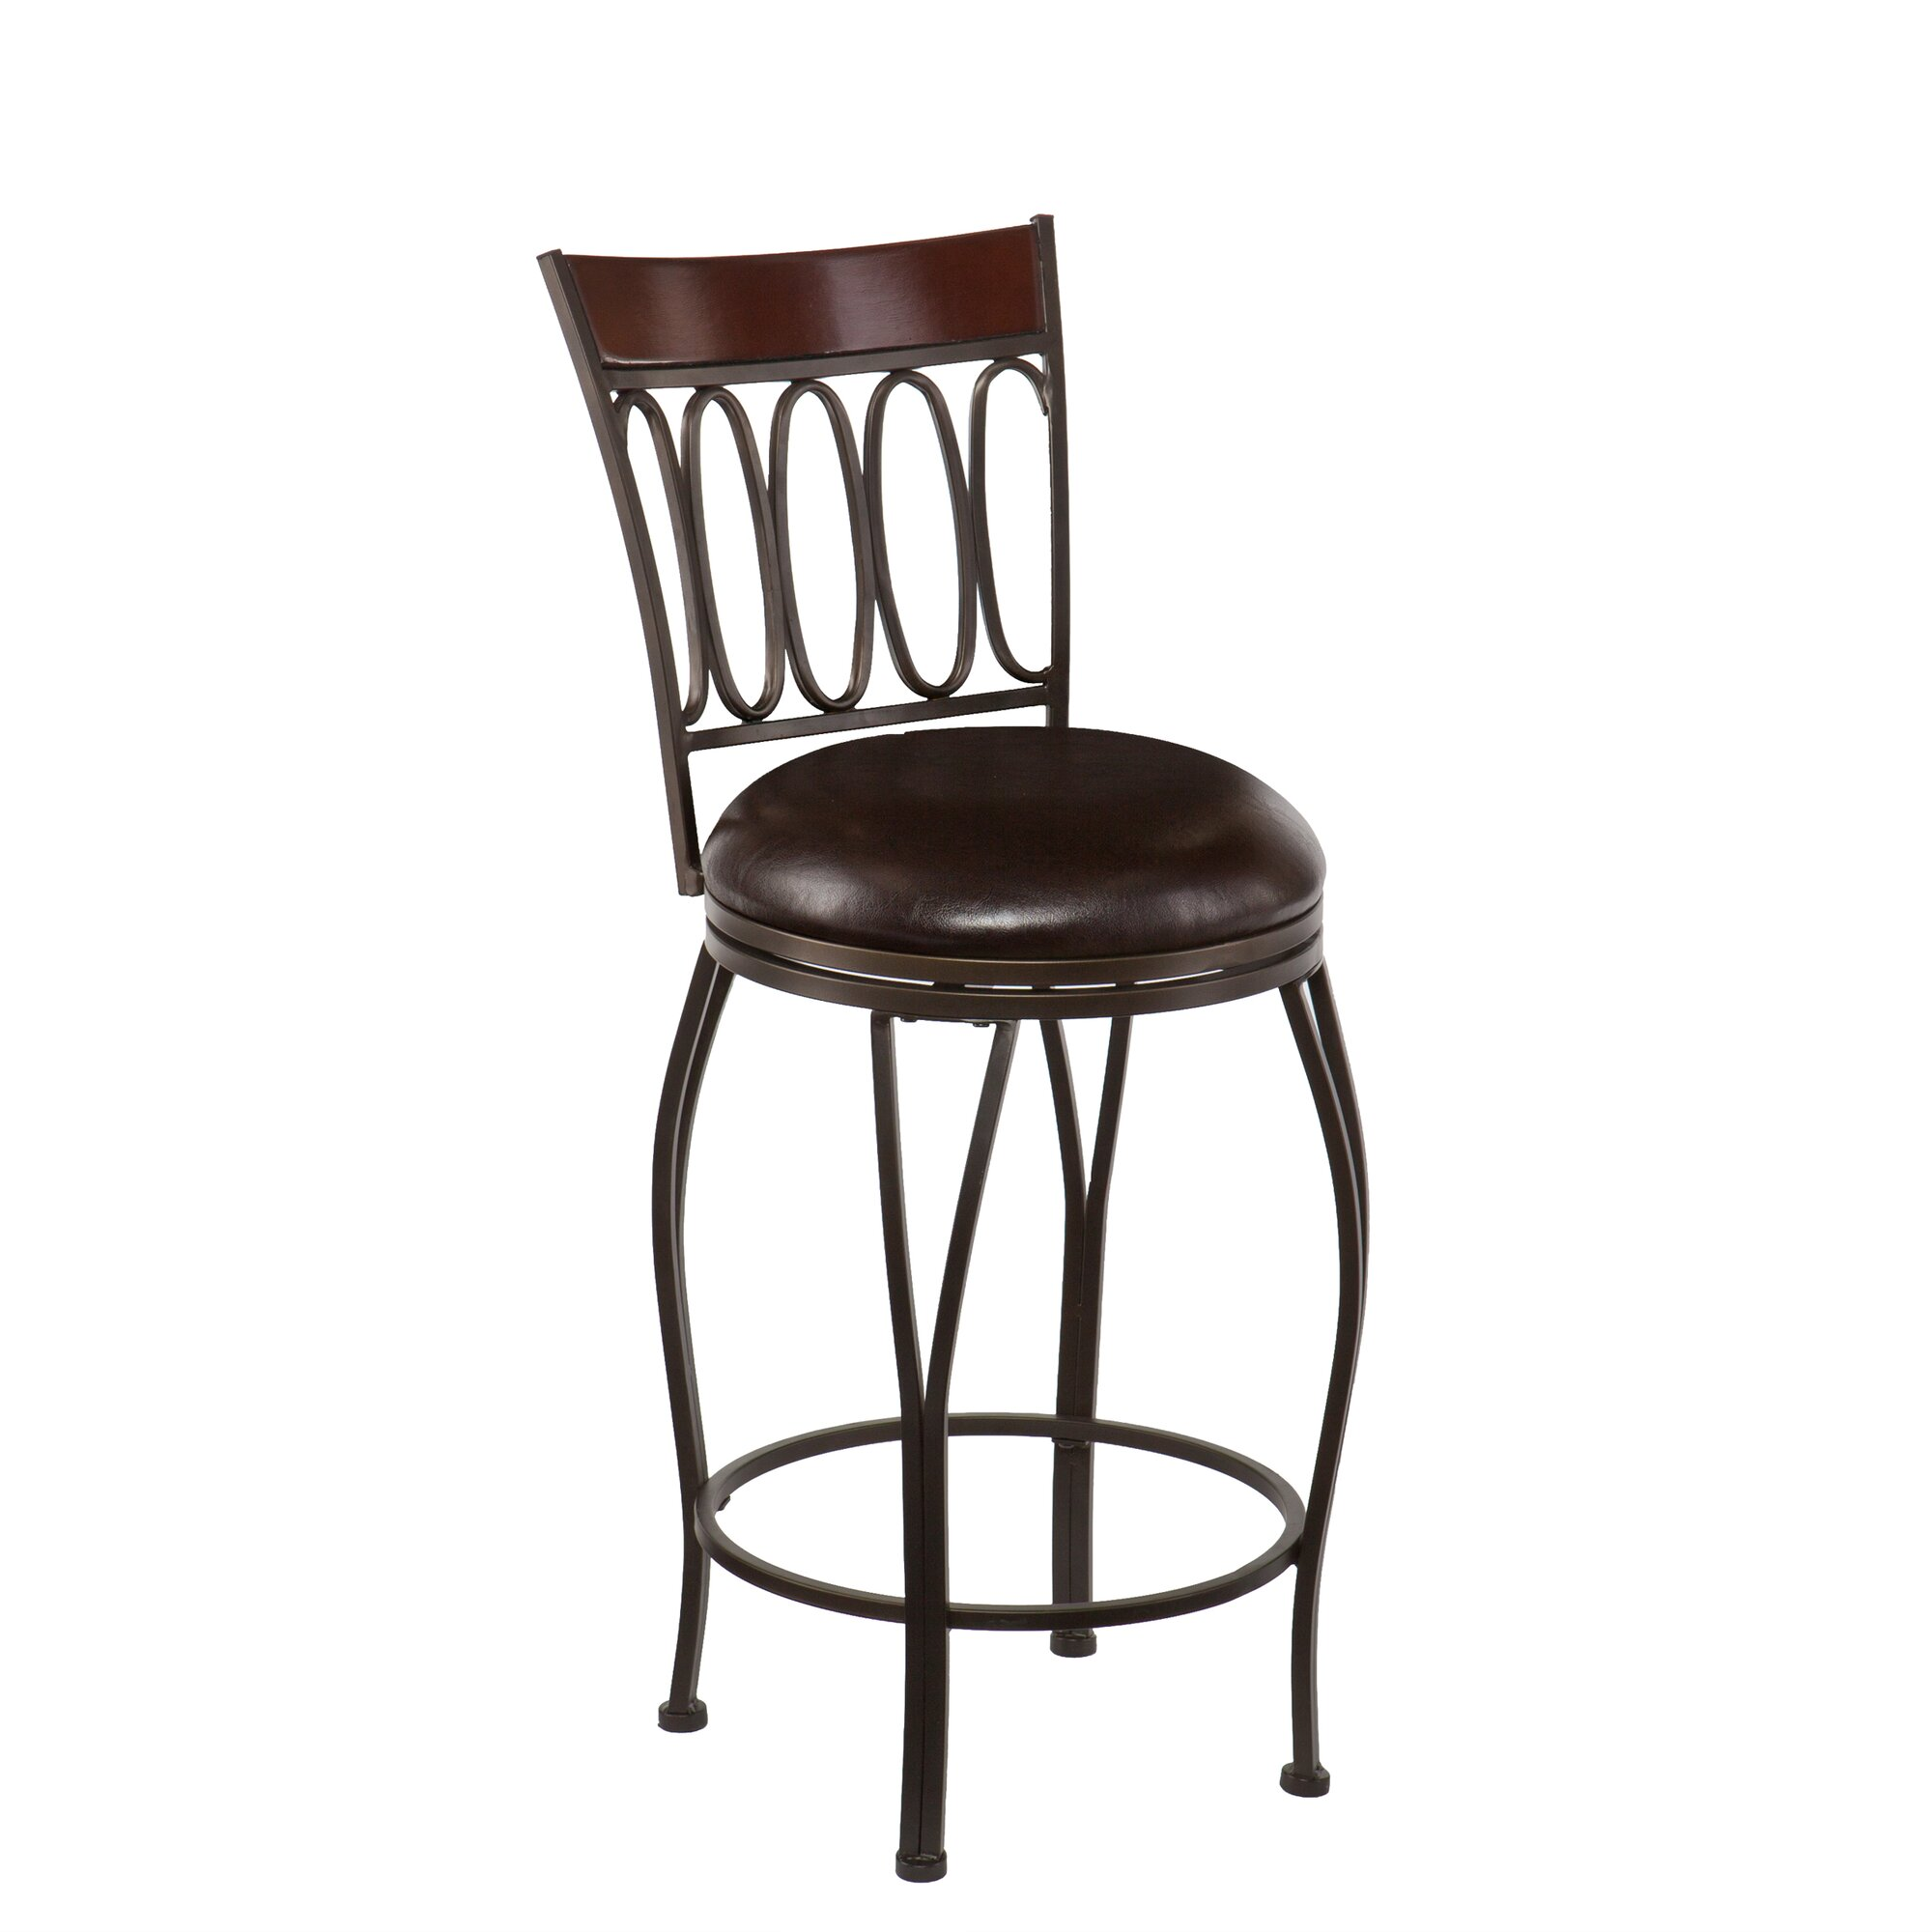 Wildon Home 174 Yorkshire 25quot Swivel Bar Stool amp Reviews  : Yorkshire2522SwivelBarStool from www.wayfair.com size 2000 x 2000 jpeg 148kB